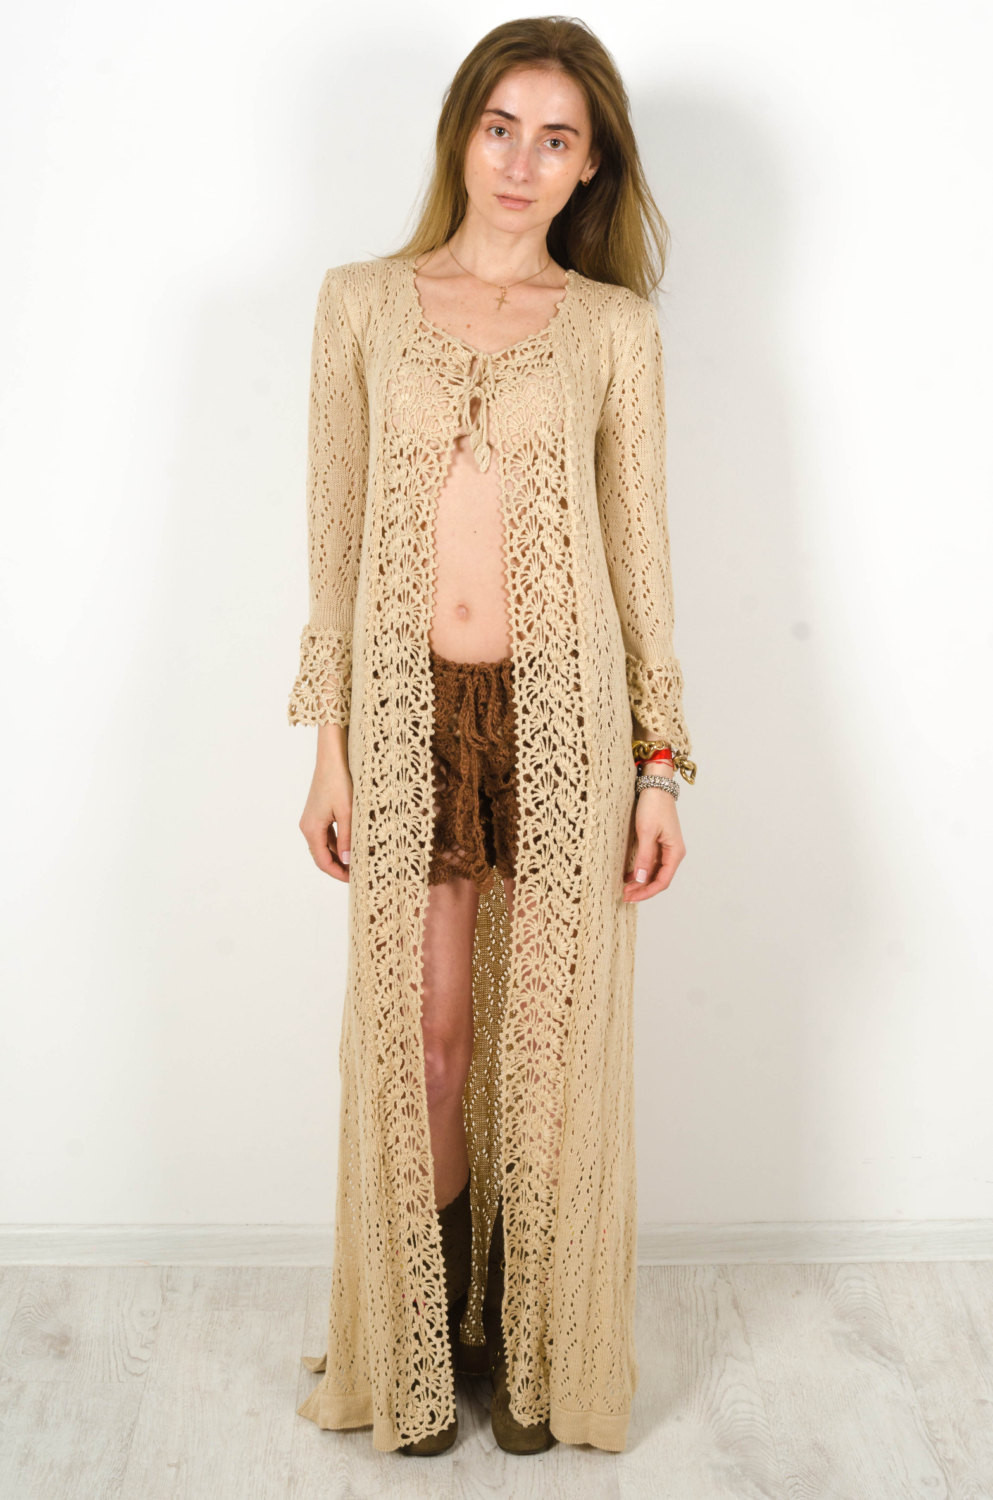 Best Of Crochet Beige Cardigan Crochet Dress Lace Cardigan Maxi Crochet Lace Cardigan Of Great 45 Images Crochet Lace Cardigan